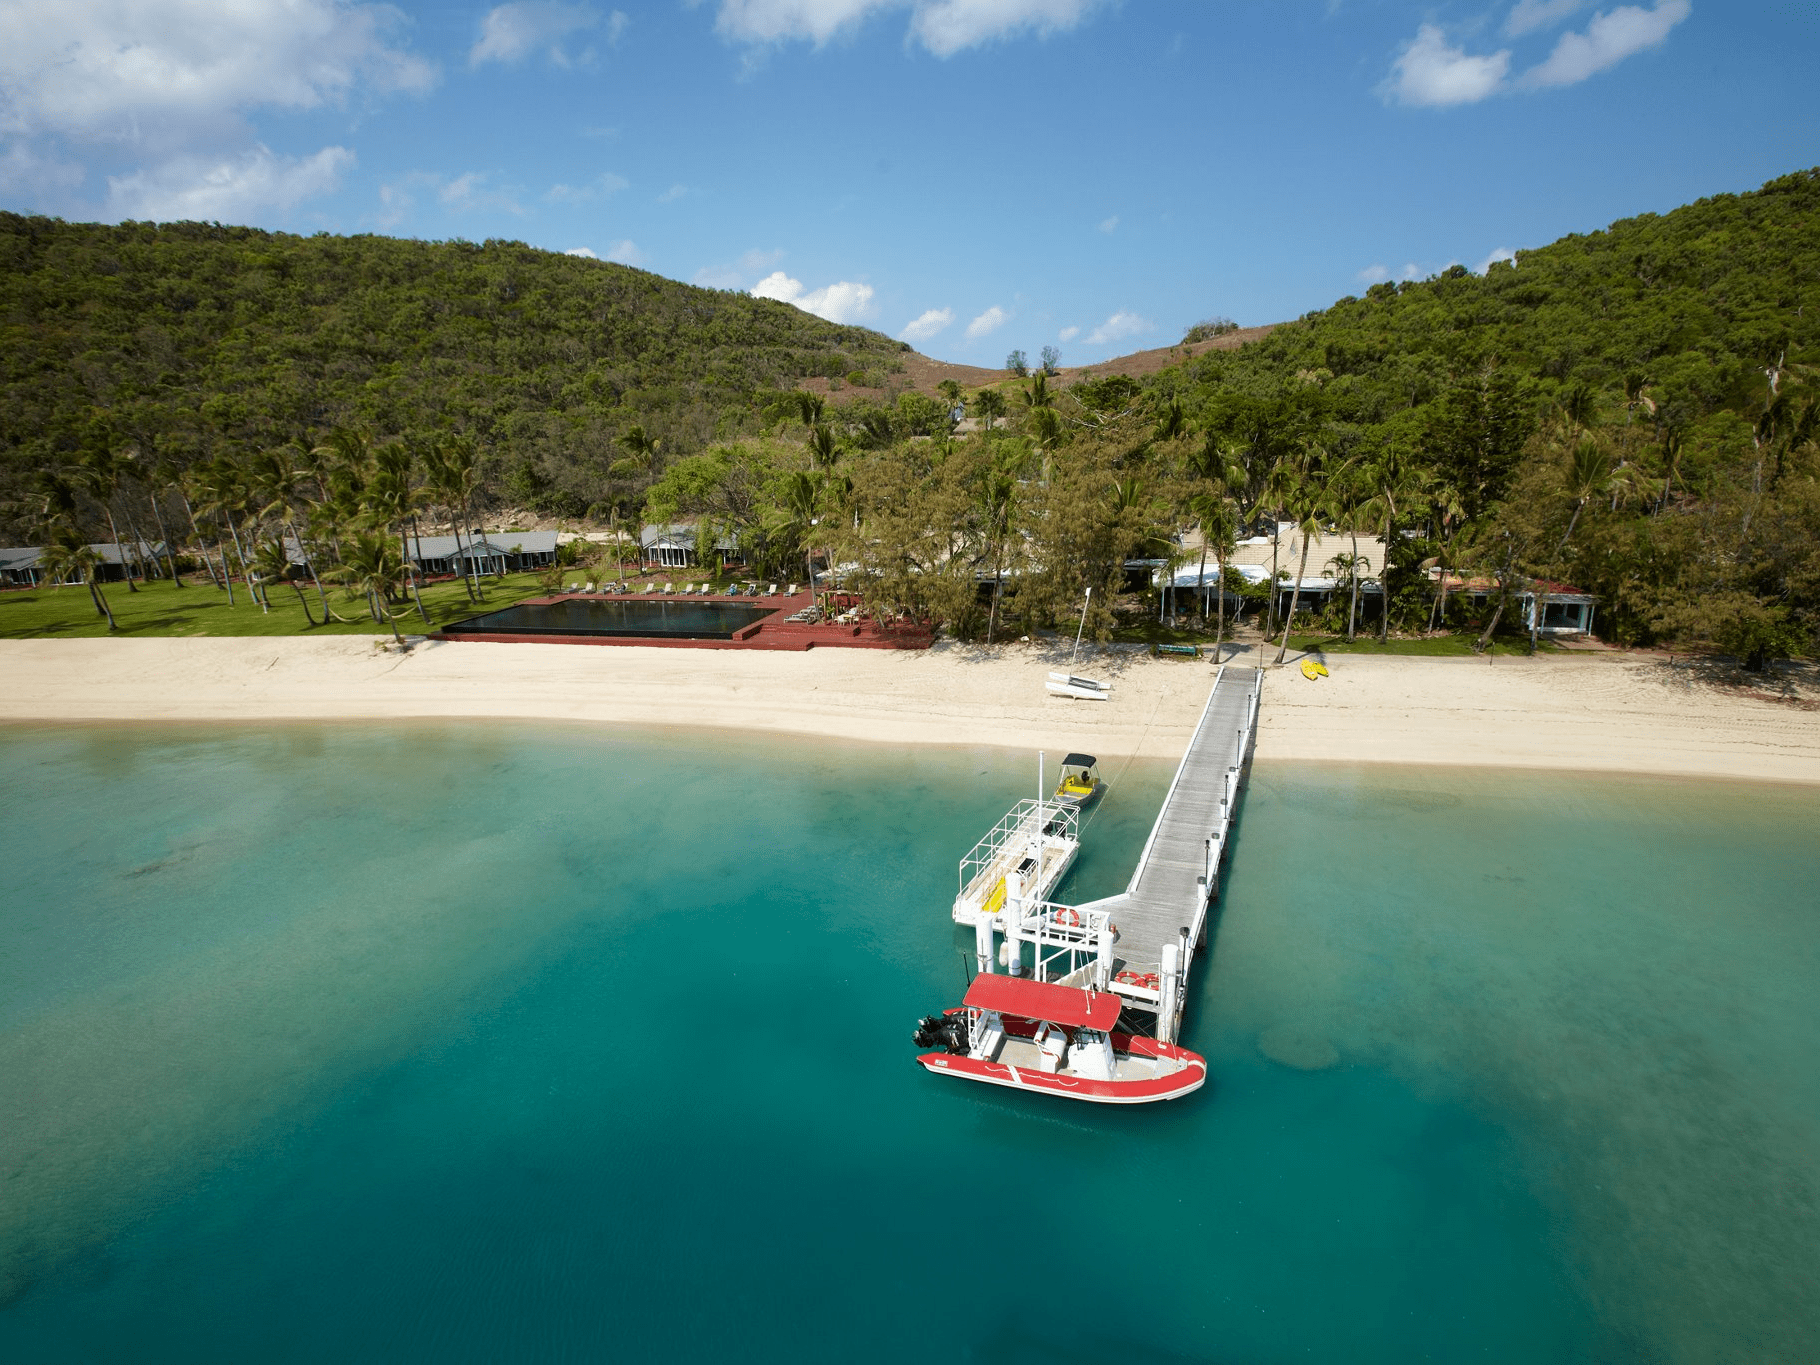 Stay on the waters of the Great Barrier Reef at Australia's Orpheus Island, which only hosts 28 guests at any given time. With experiences like a candlelit dinner on the pier, travelers will feel like they're in their own private paradise. There's also a diving site where you can see thousands of marine species up-close.